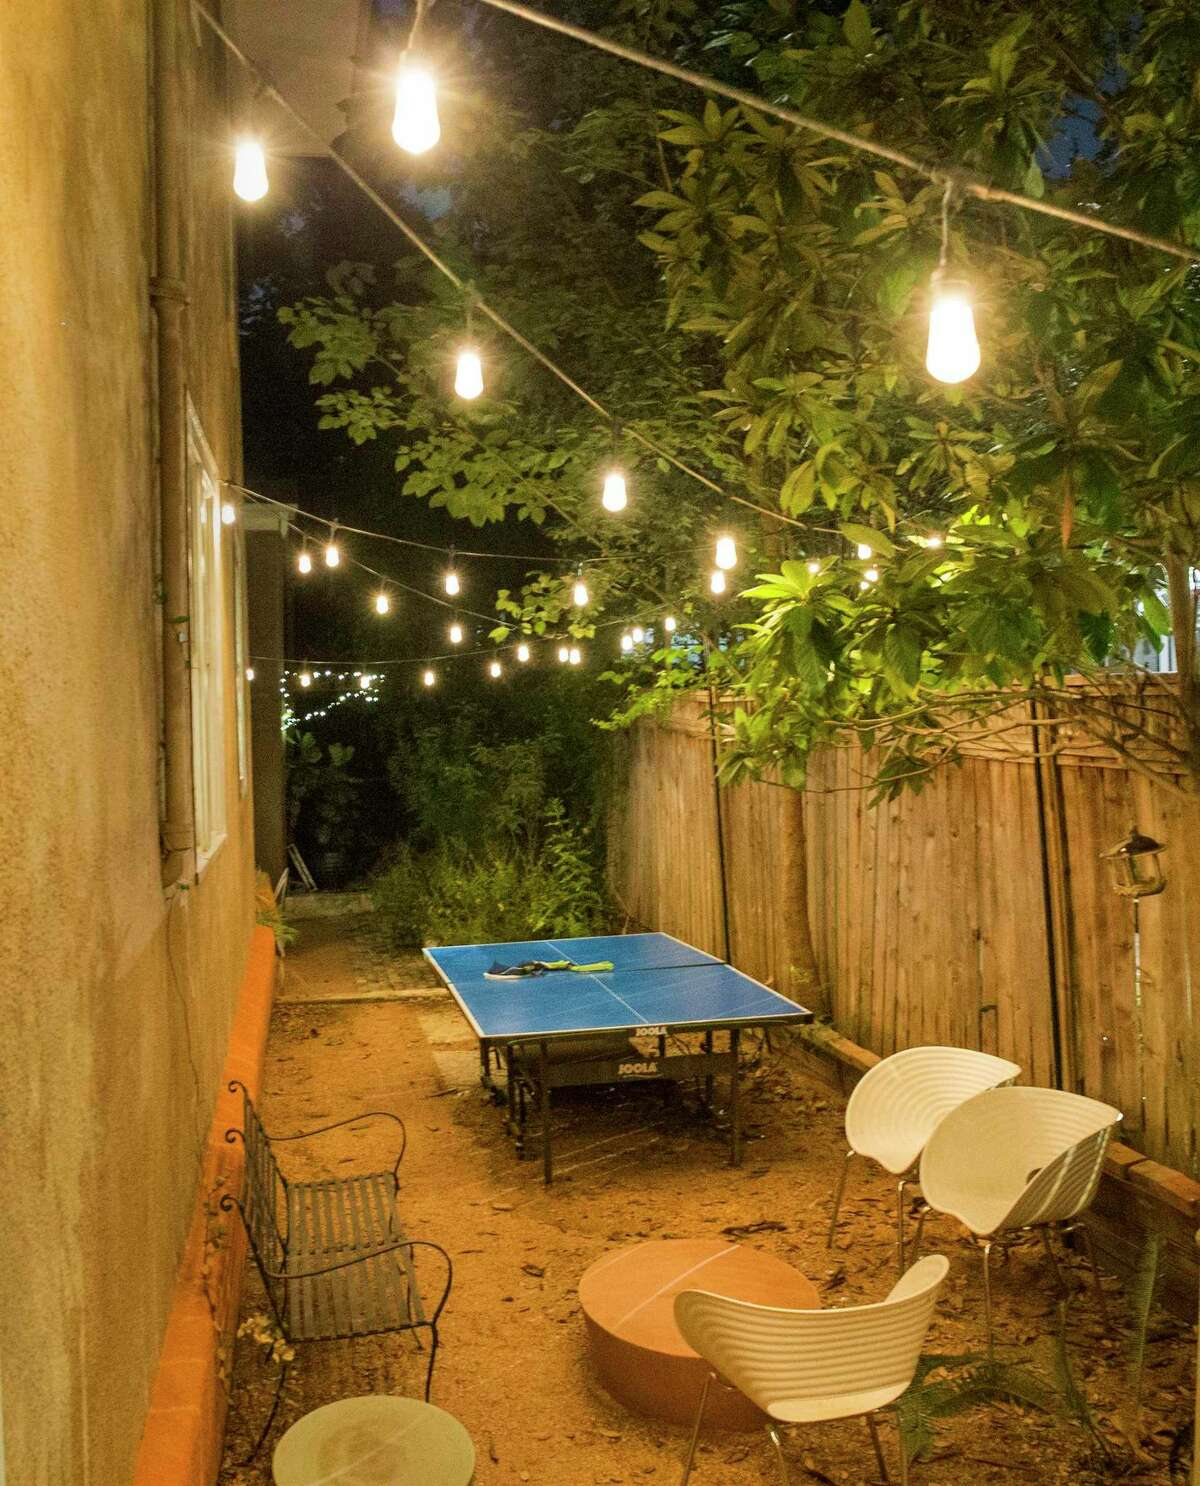 LIGHTING IS EVERYTHING Hanging lights are an easy way to spruce up any outdoor space and will set a more romantic and fun tone.